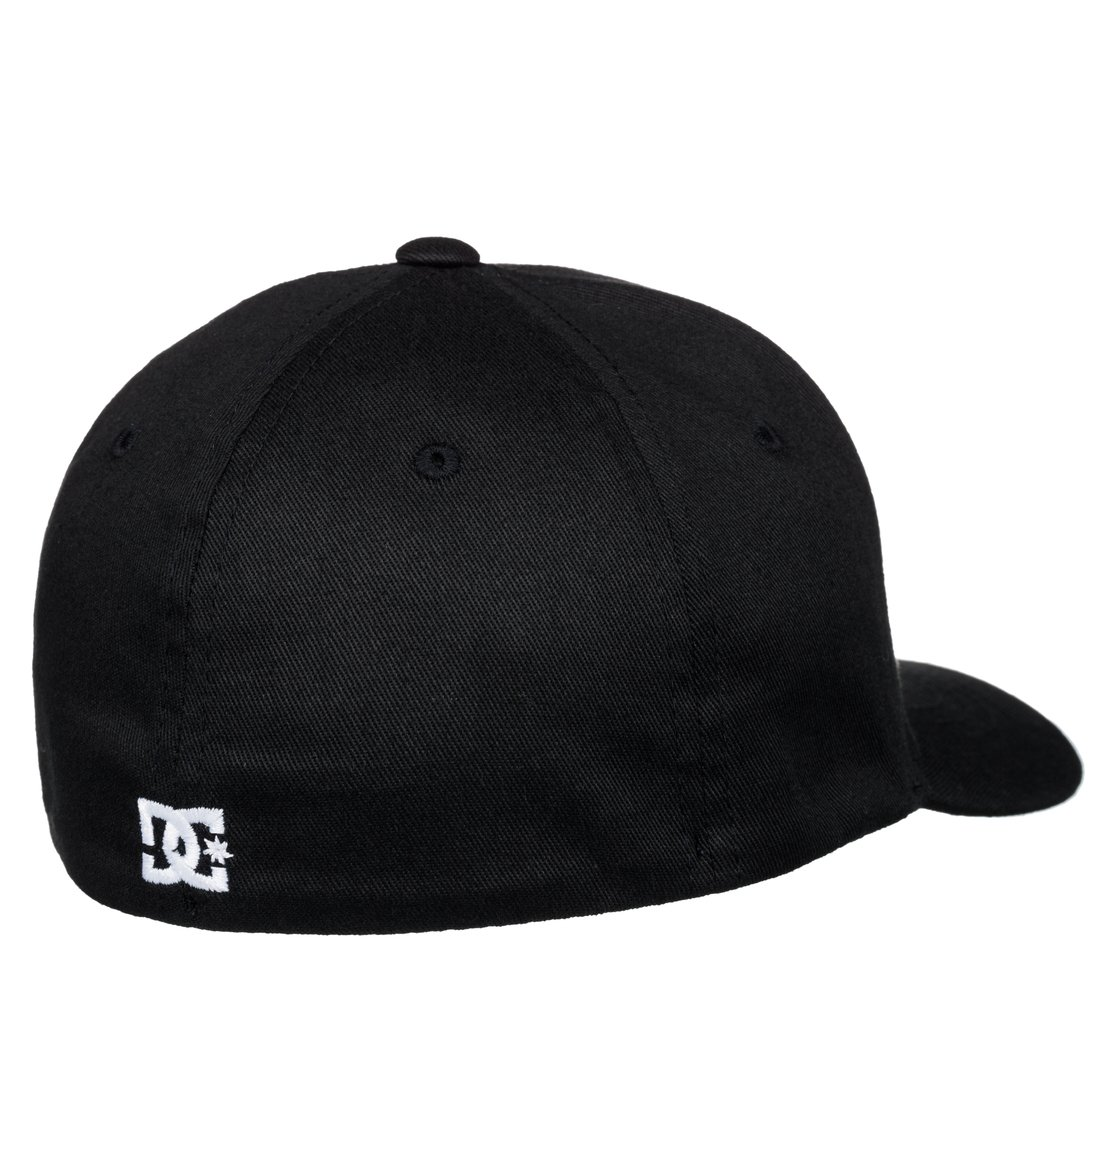 3 Cap Star 2 - Gorra Flexfit para Chicos 8-16 ADBHA03026 DC Shoes 07881f7c087